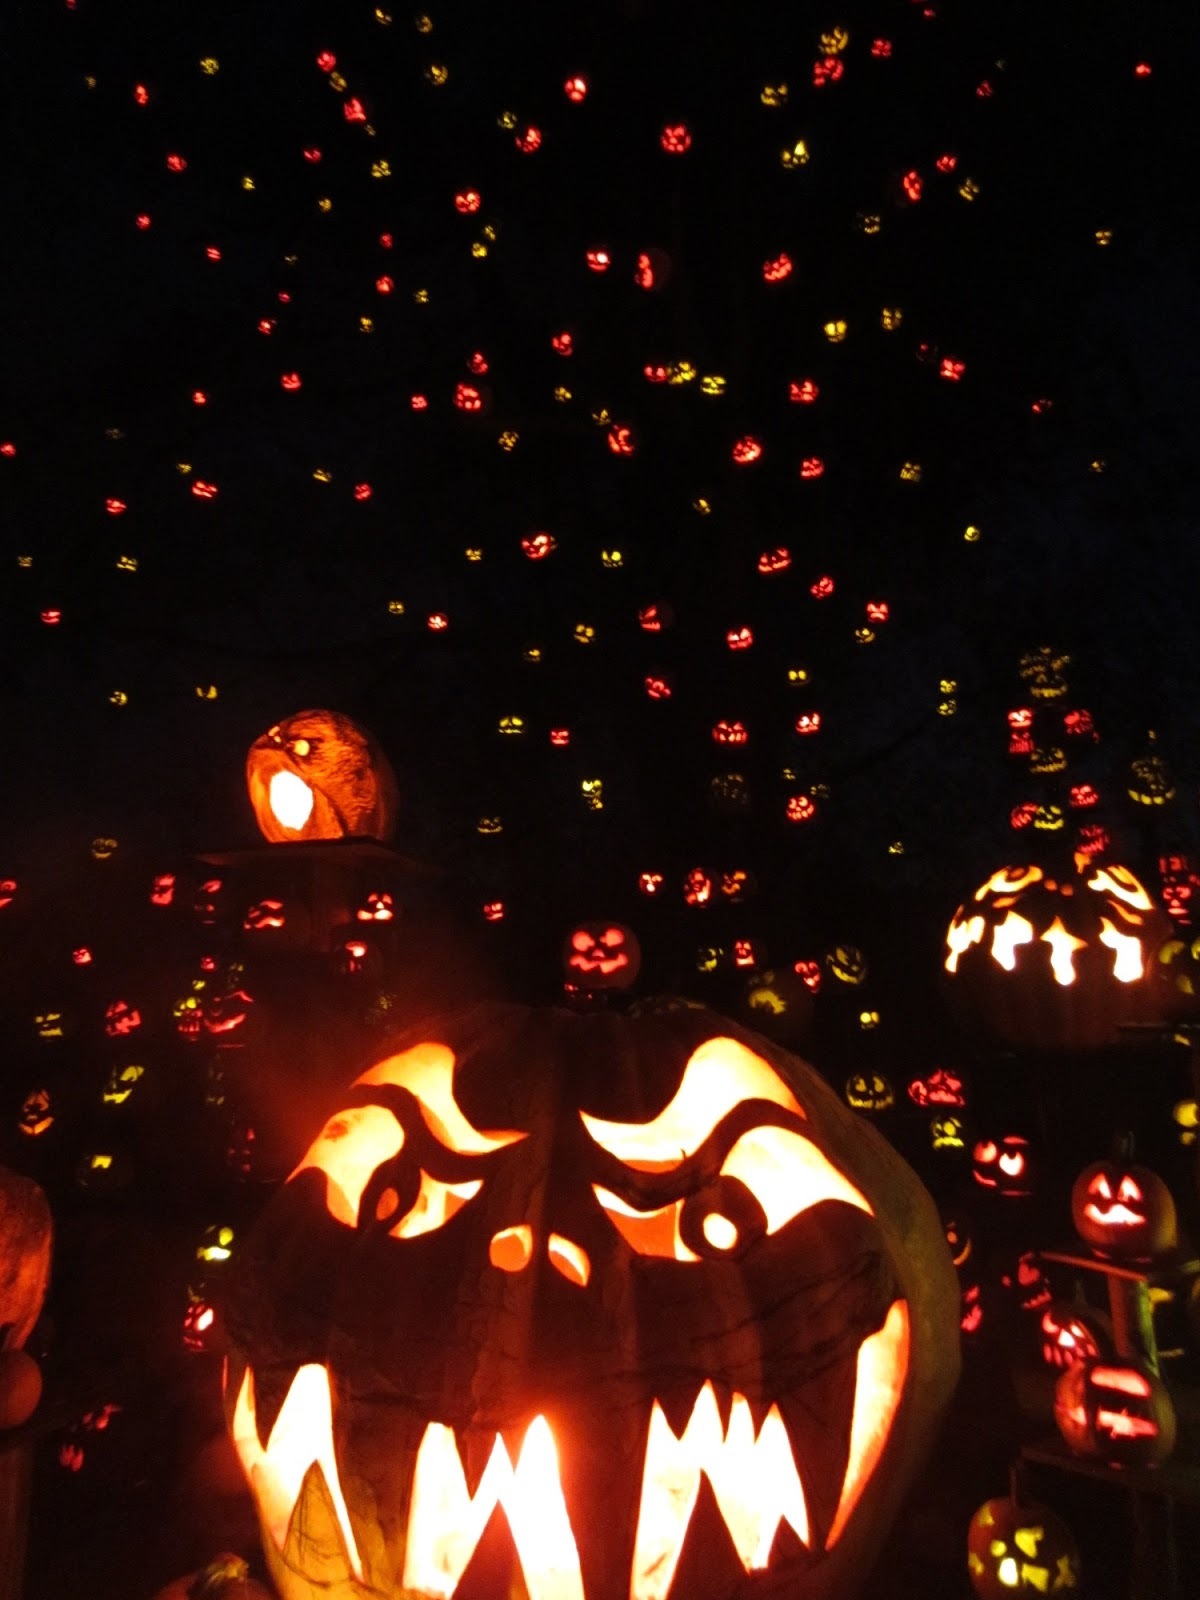 evan and lauren's cool blog: 10/14/12: roger williams zoo jack-o